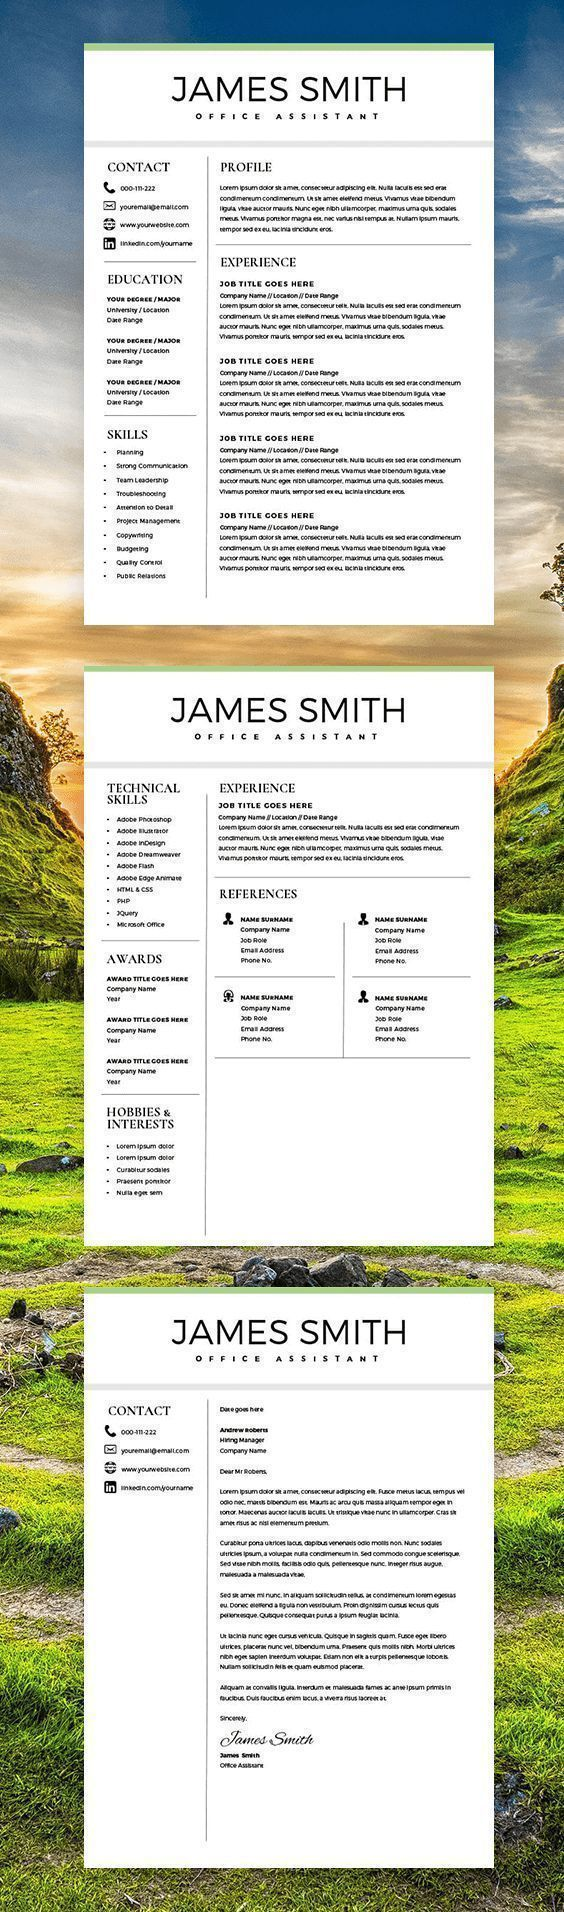 Classic Resume - Professional Resume Template for Word & Pages - 2 Pages Resume - Cover Letter - Curriculum Vitae - Instant Download - CV